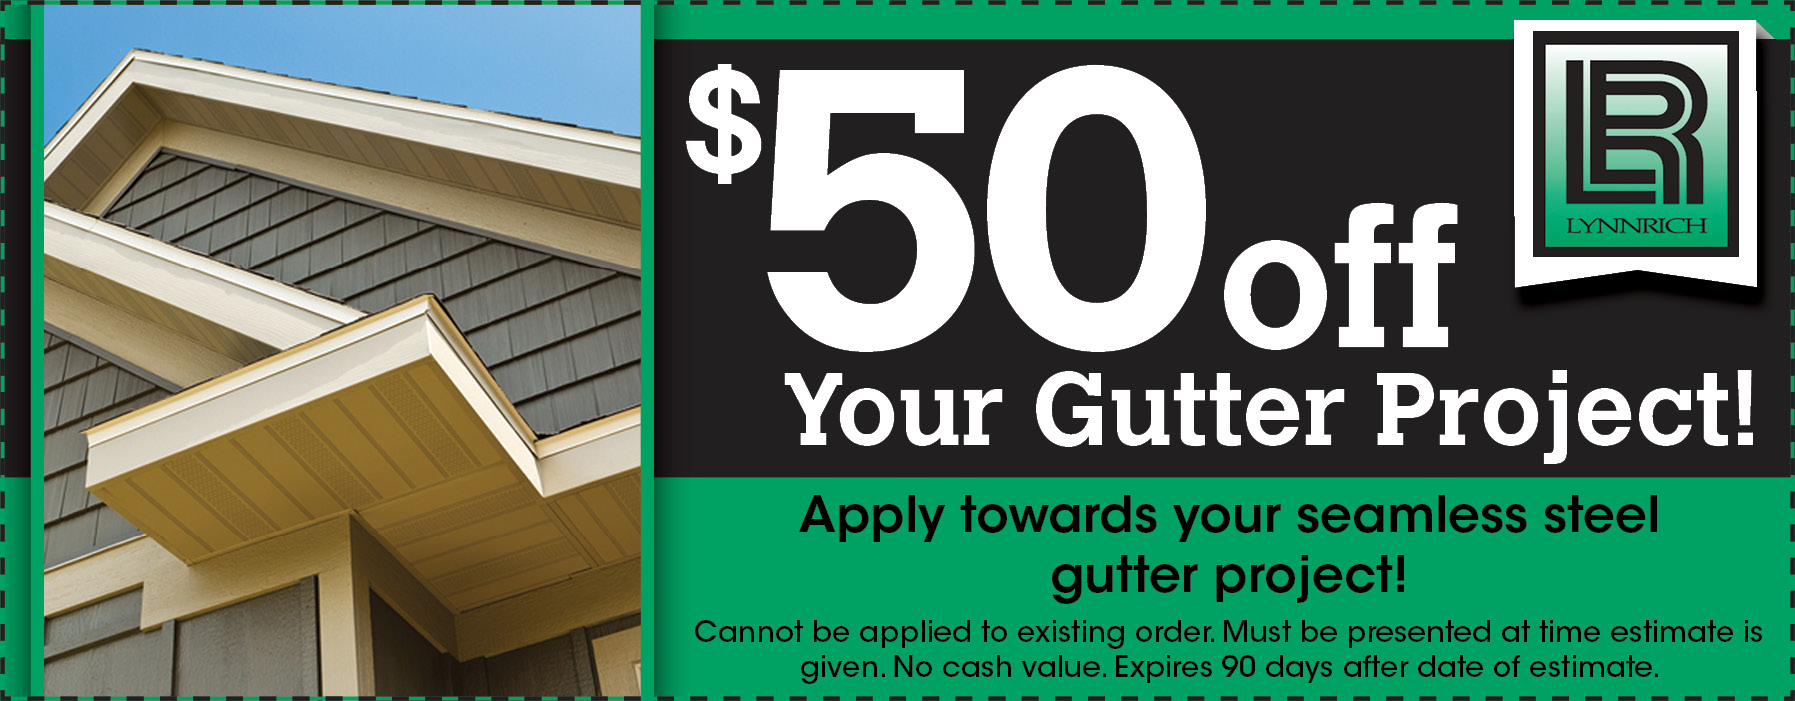 billings gutter discount